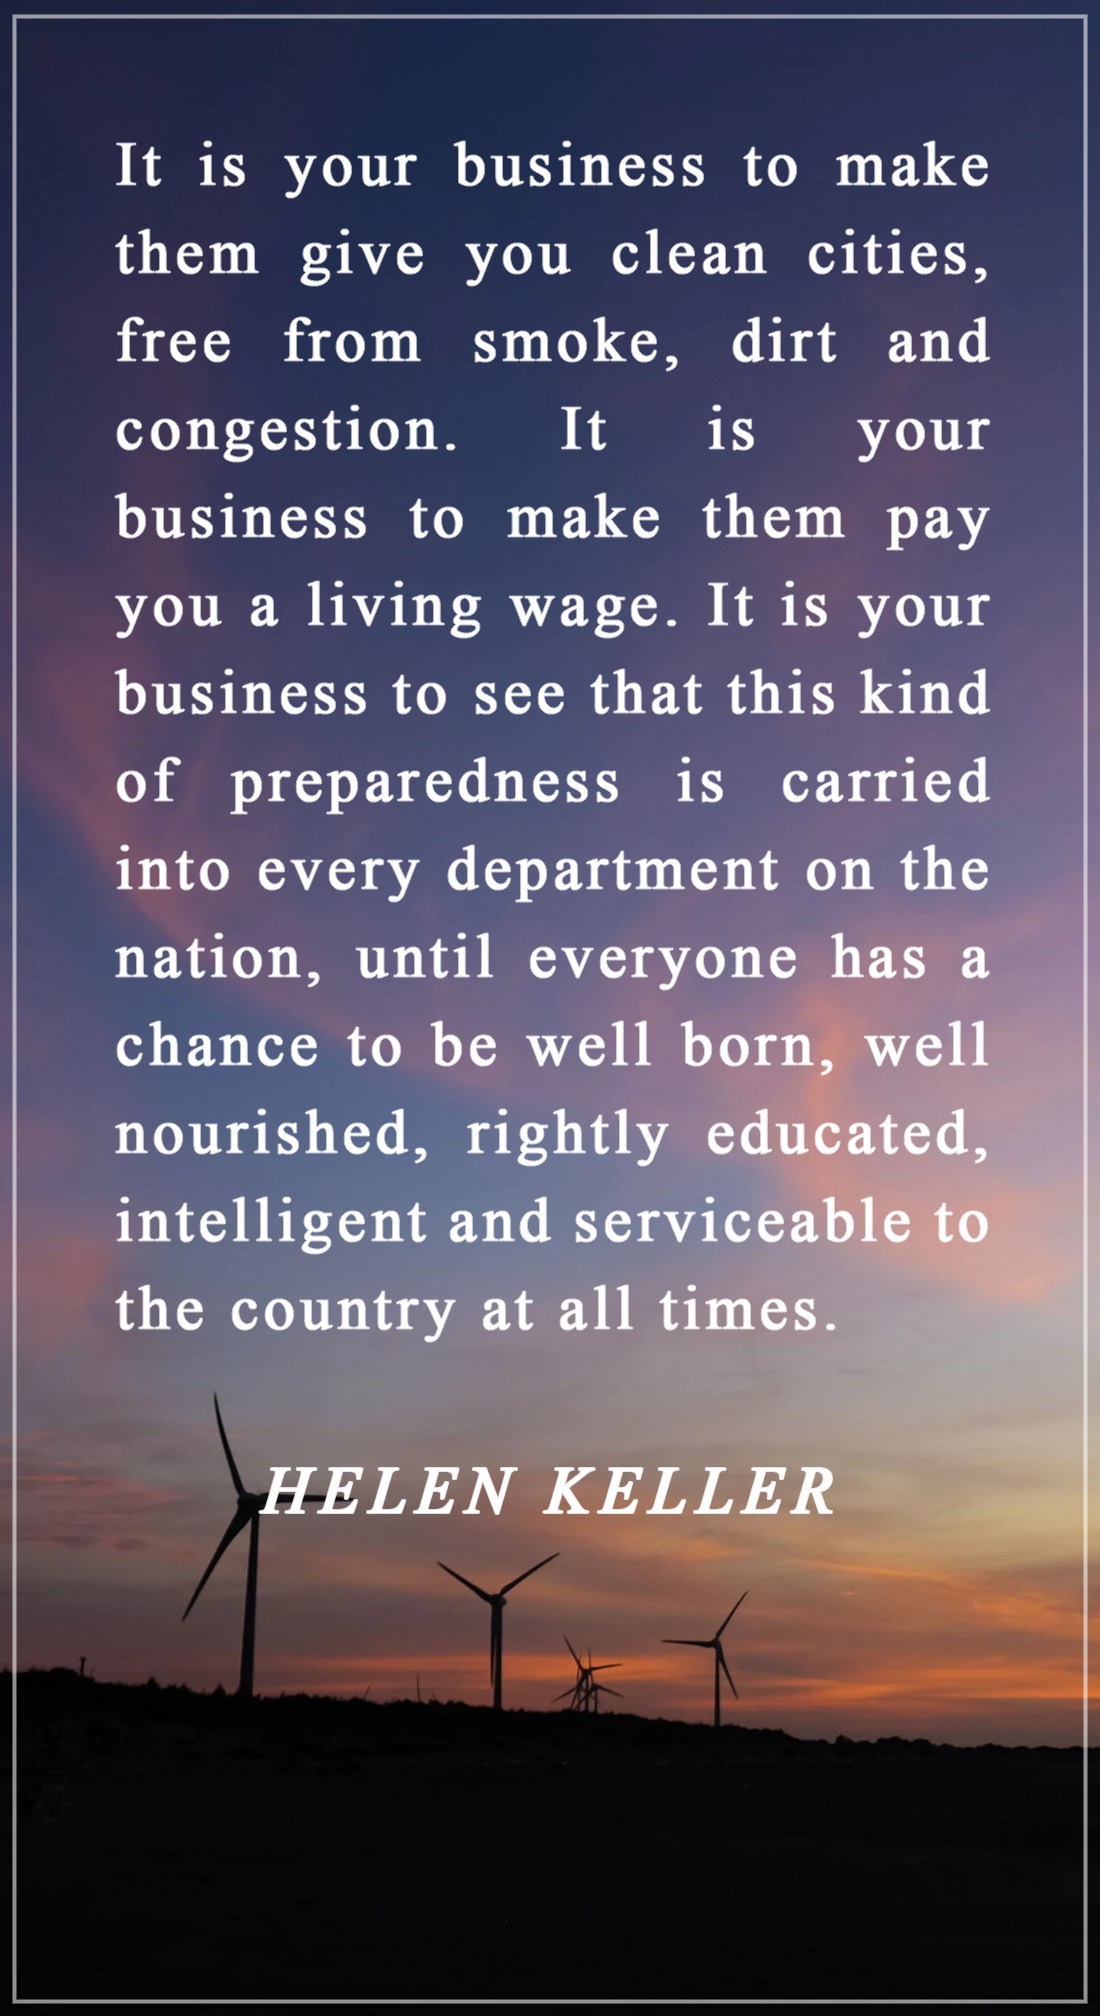 It is your business to make them give you clean cities, free from smoke, dirt and congestion. It is your business to make them pay you a living wage. It is your business to see that this kind of preparedness is carried into every department on nation, until eve - chance to https://inspirational.ly